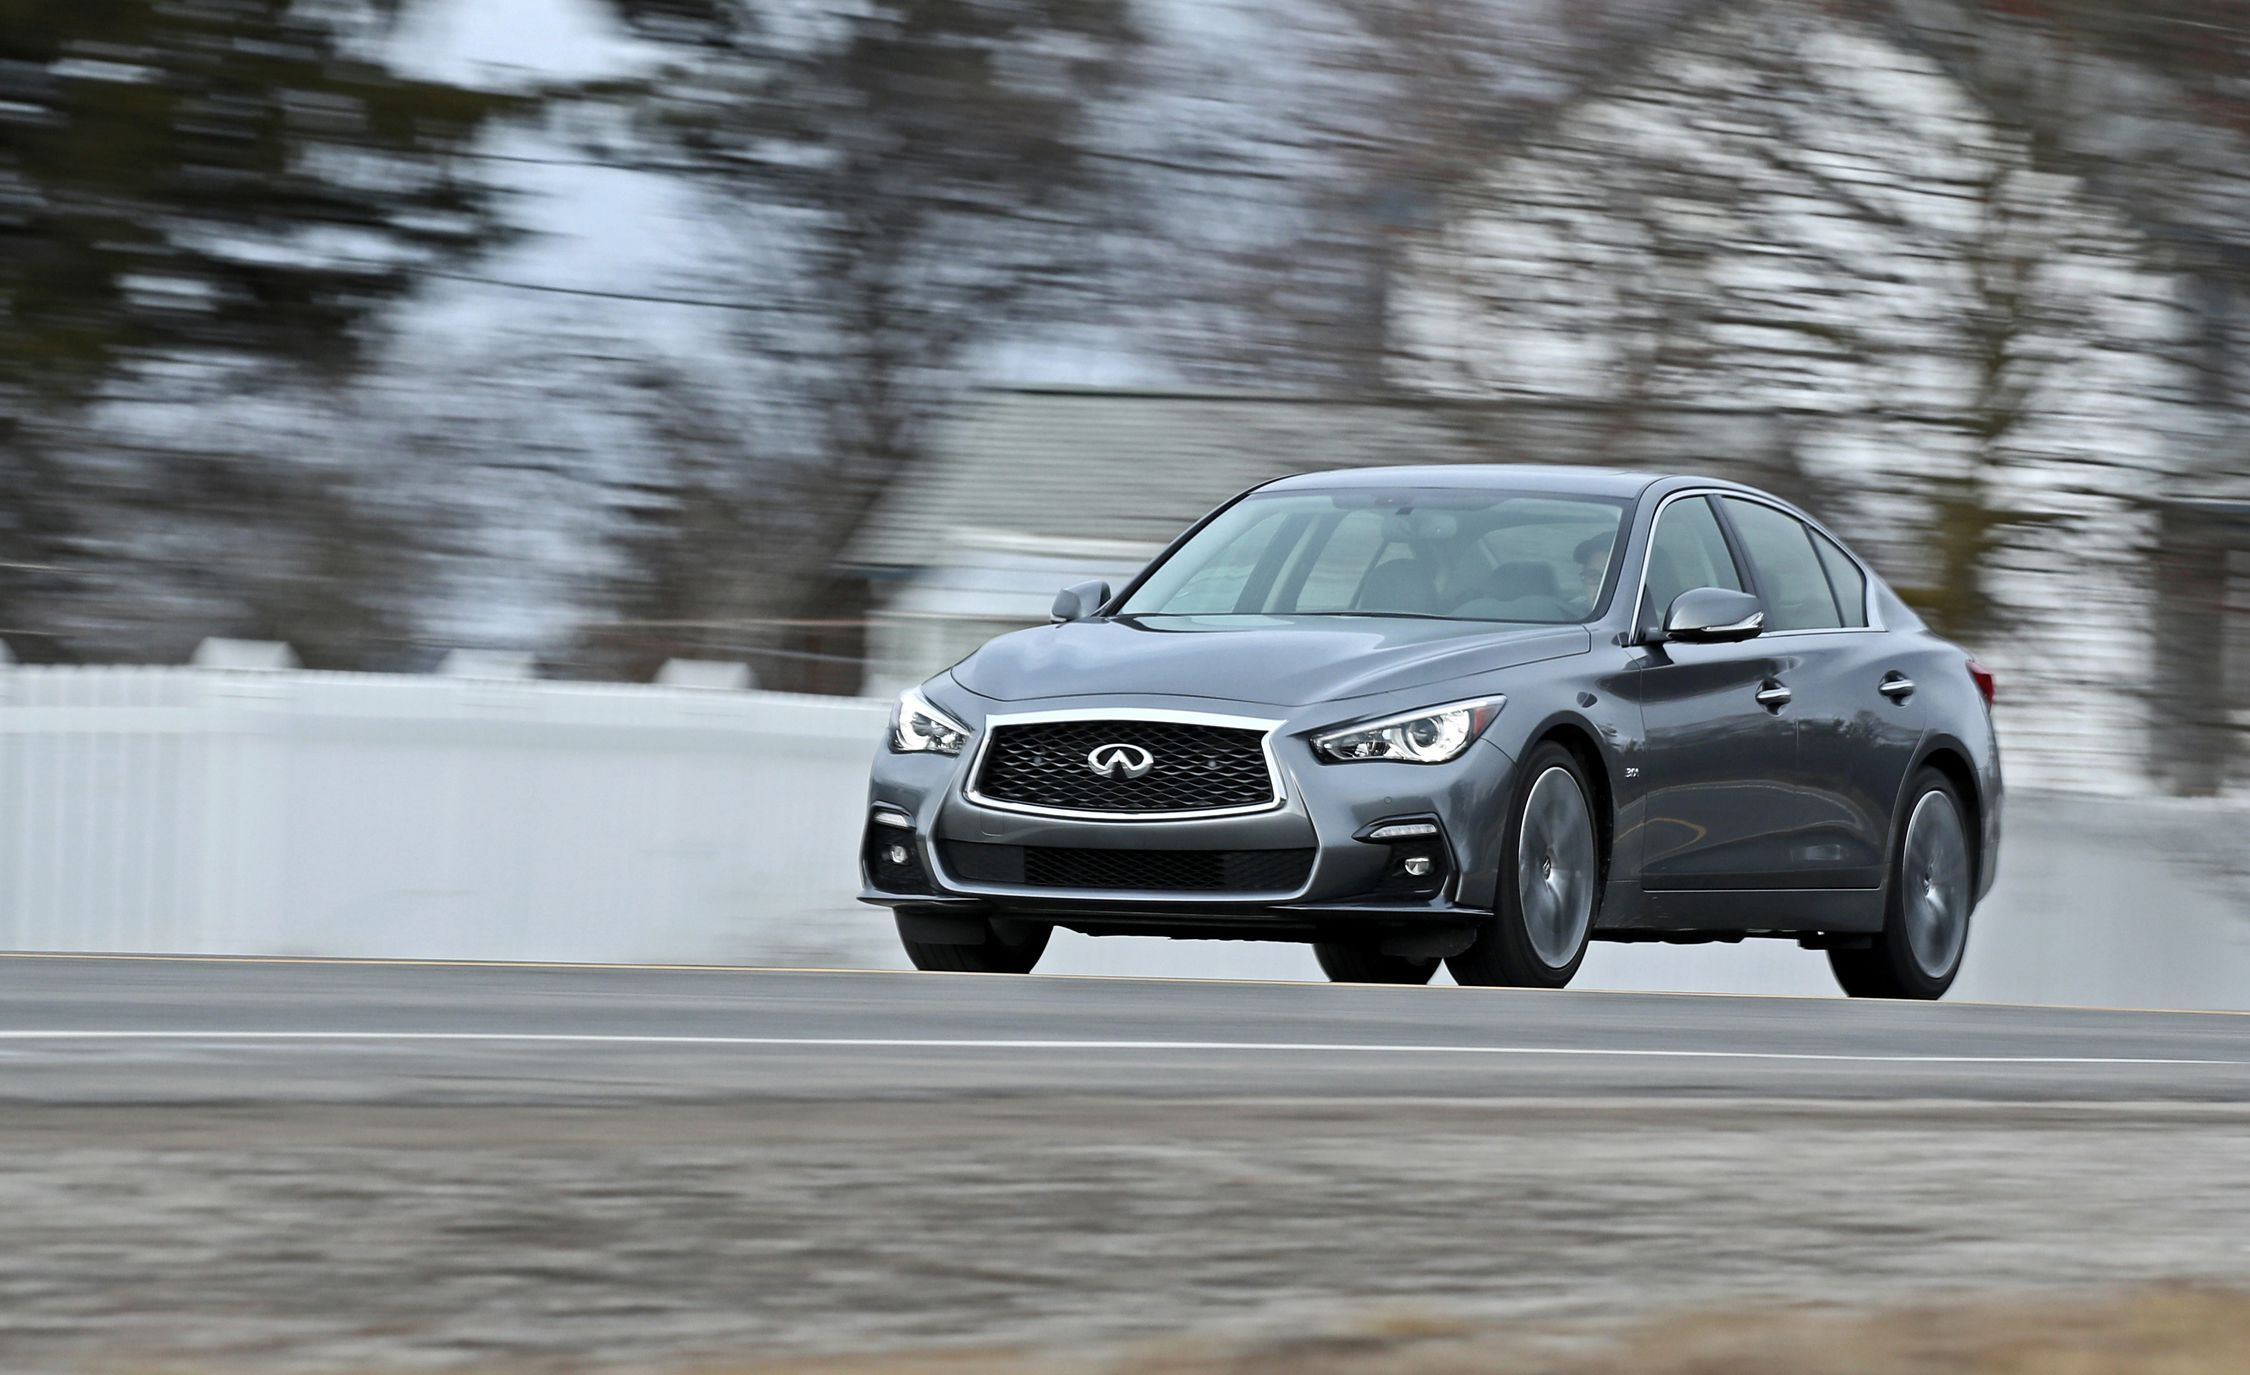 2019 infiniti q50 review, pricing, and specs